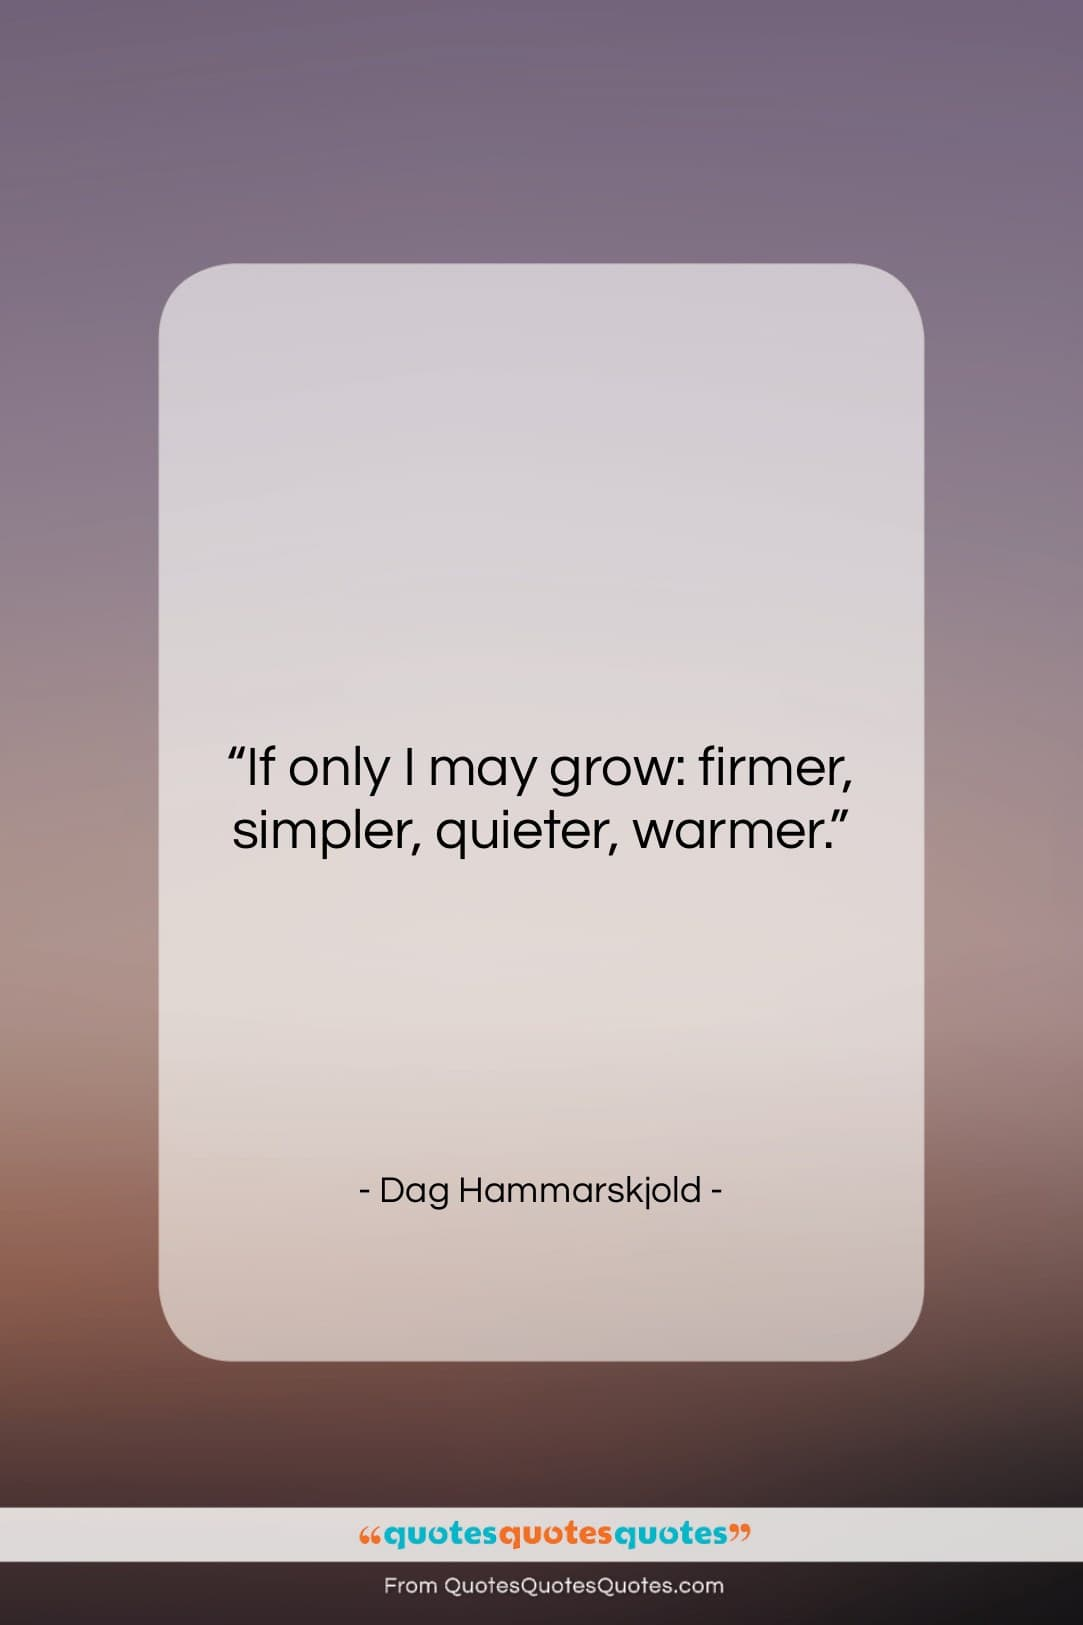 """Dag Hammarskjold quote: """"If only I may grow: firmer, simpler,…""""- at QuotesQuotesQuotes.com"""